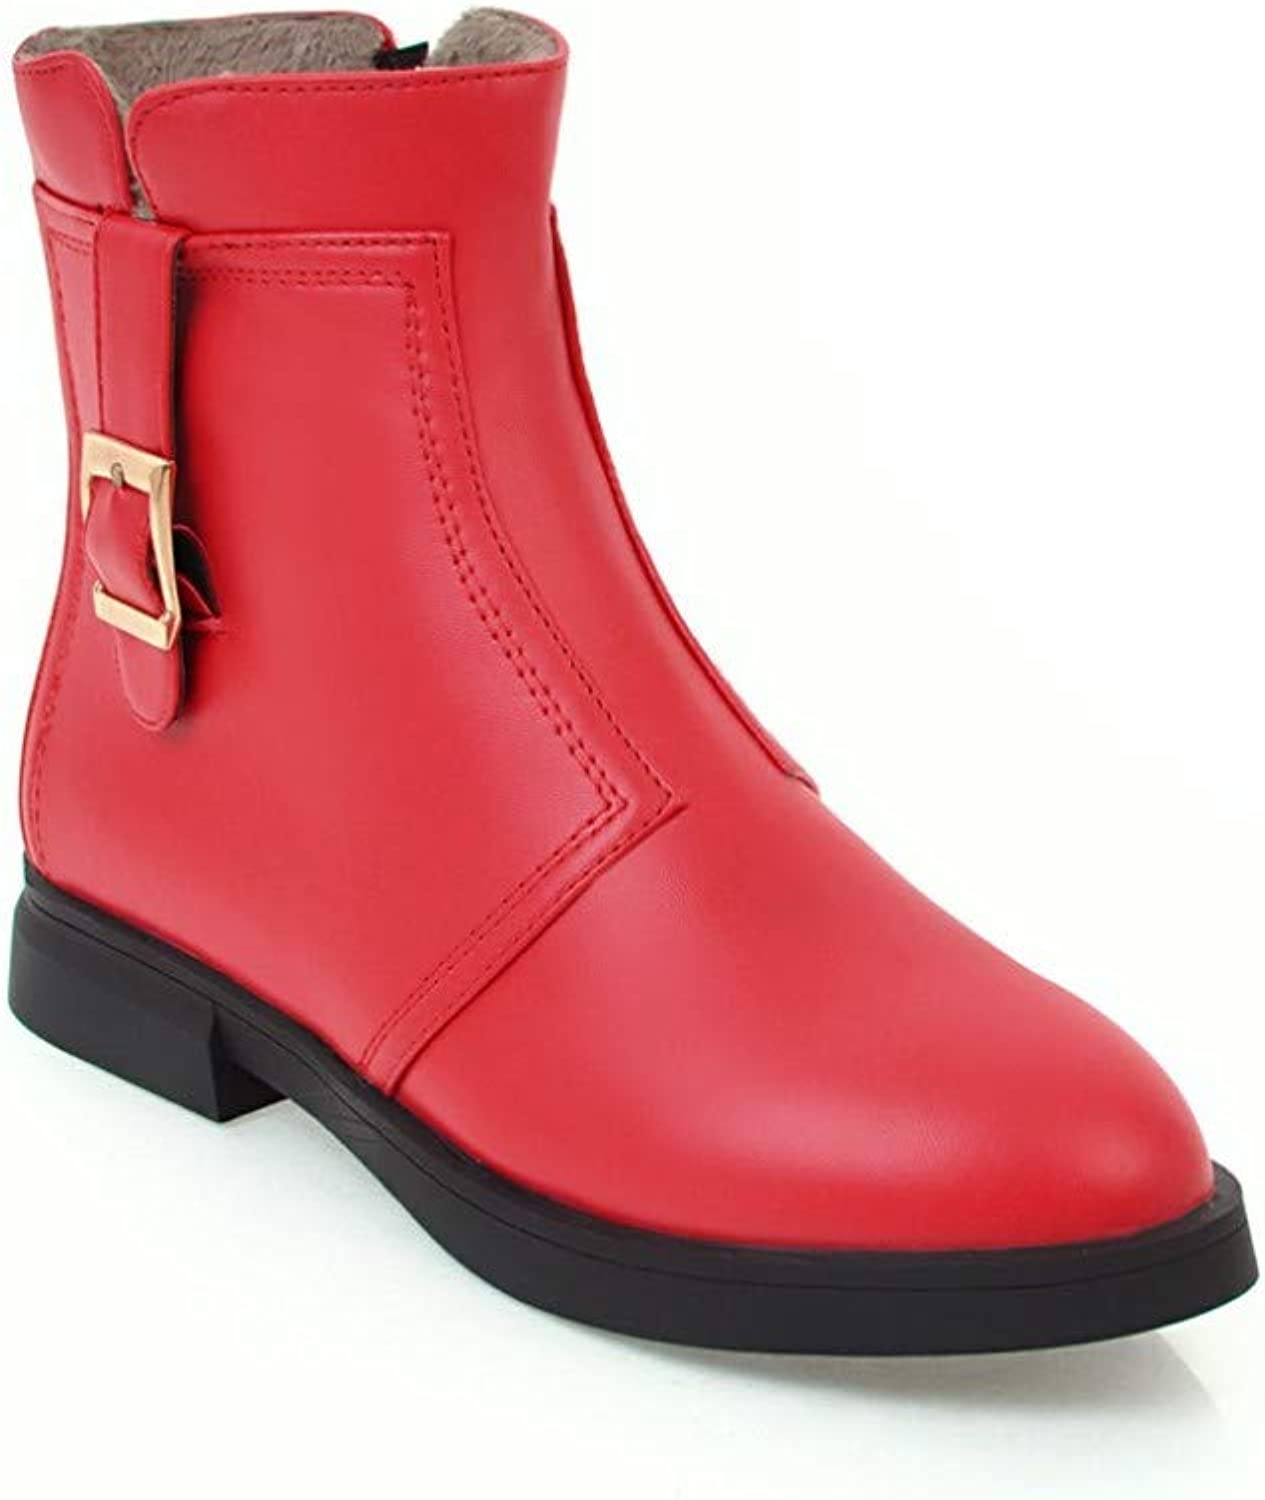 Women College Style Simple Martin Boots 2018 Autumn Low Heel Buckle Ankle Boots Size 31-33,Red,39